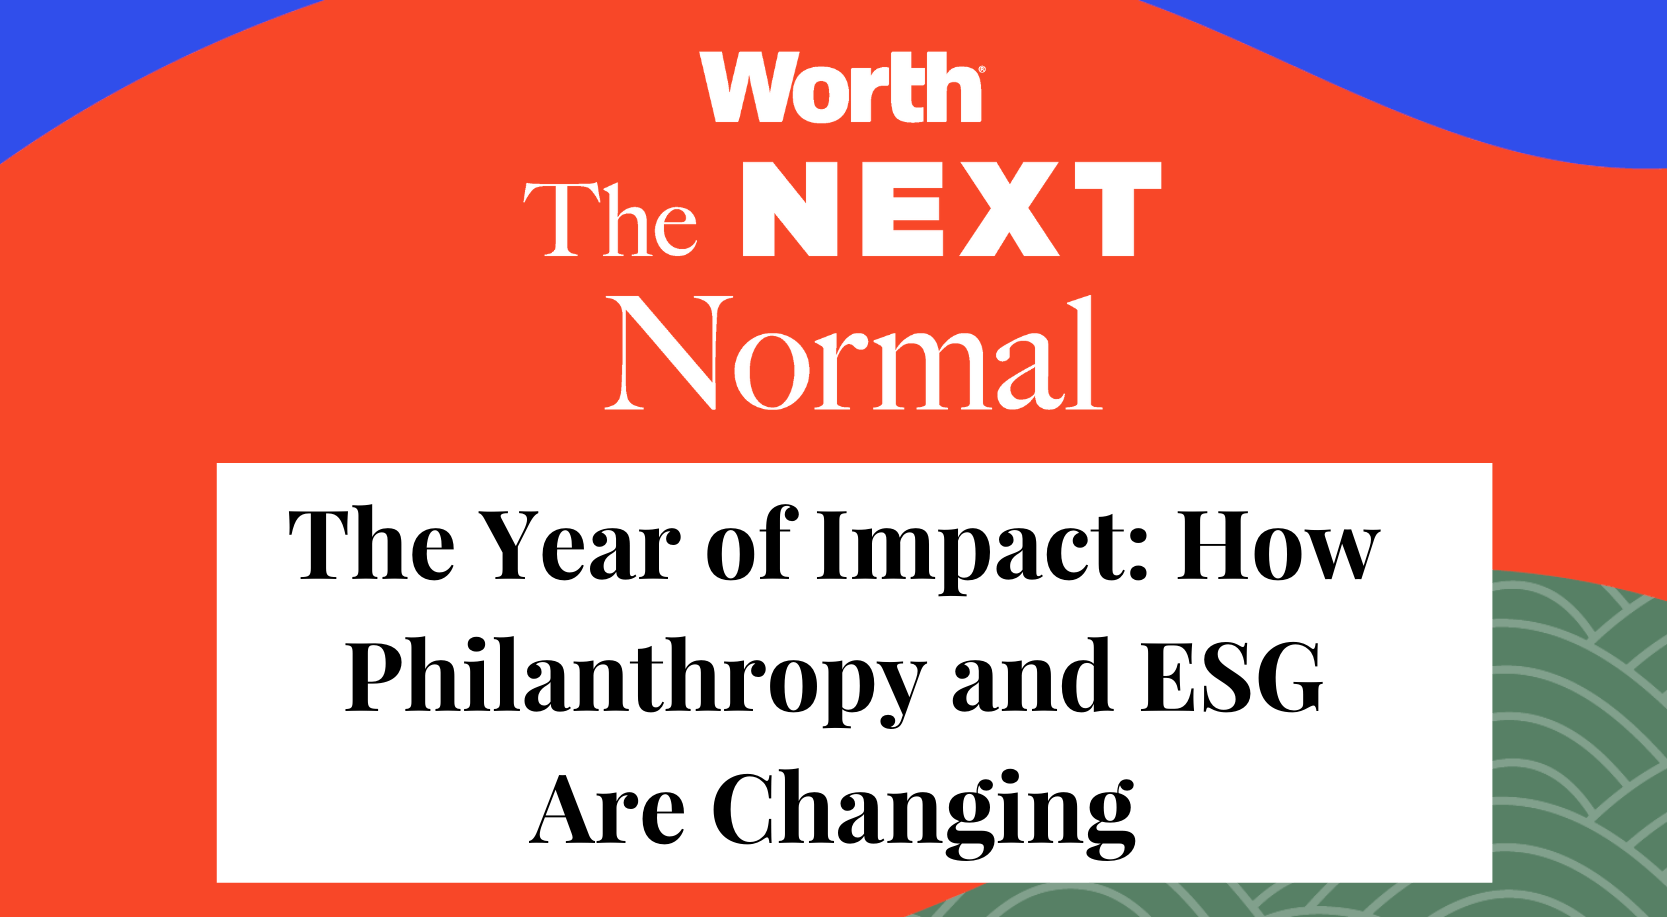 The Year of Impact: How Philanthropy and ESG Are Changing